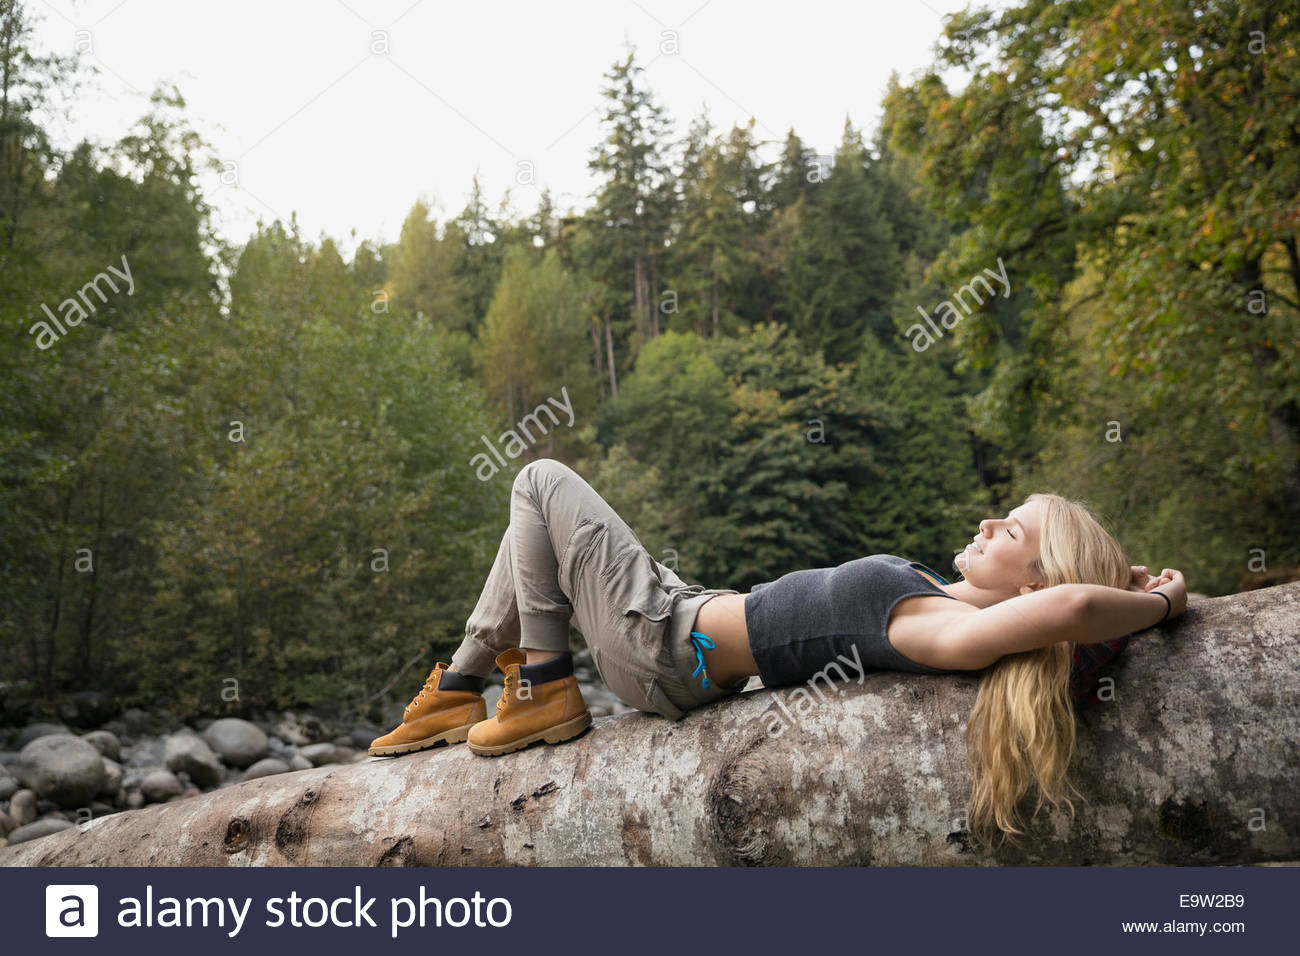 Young woman laying on fallen tree in woods - Stock Image